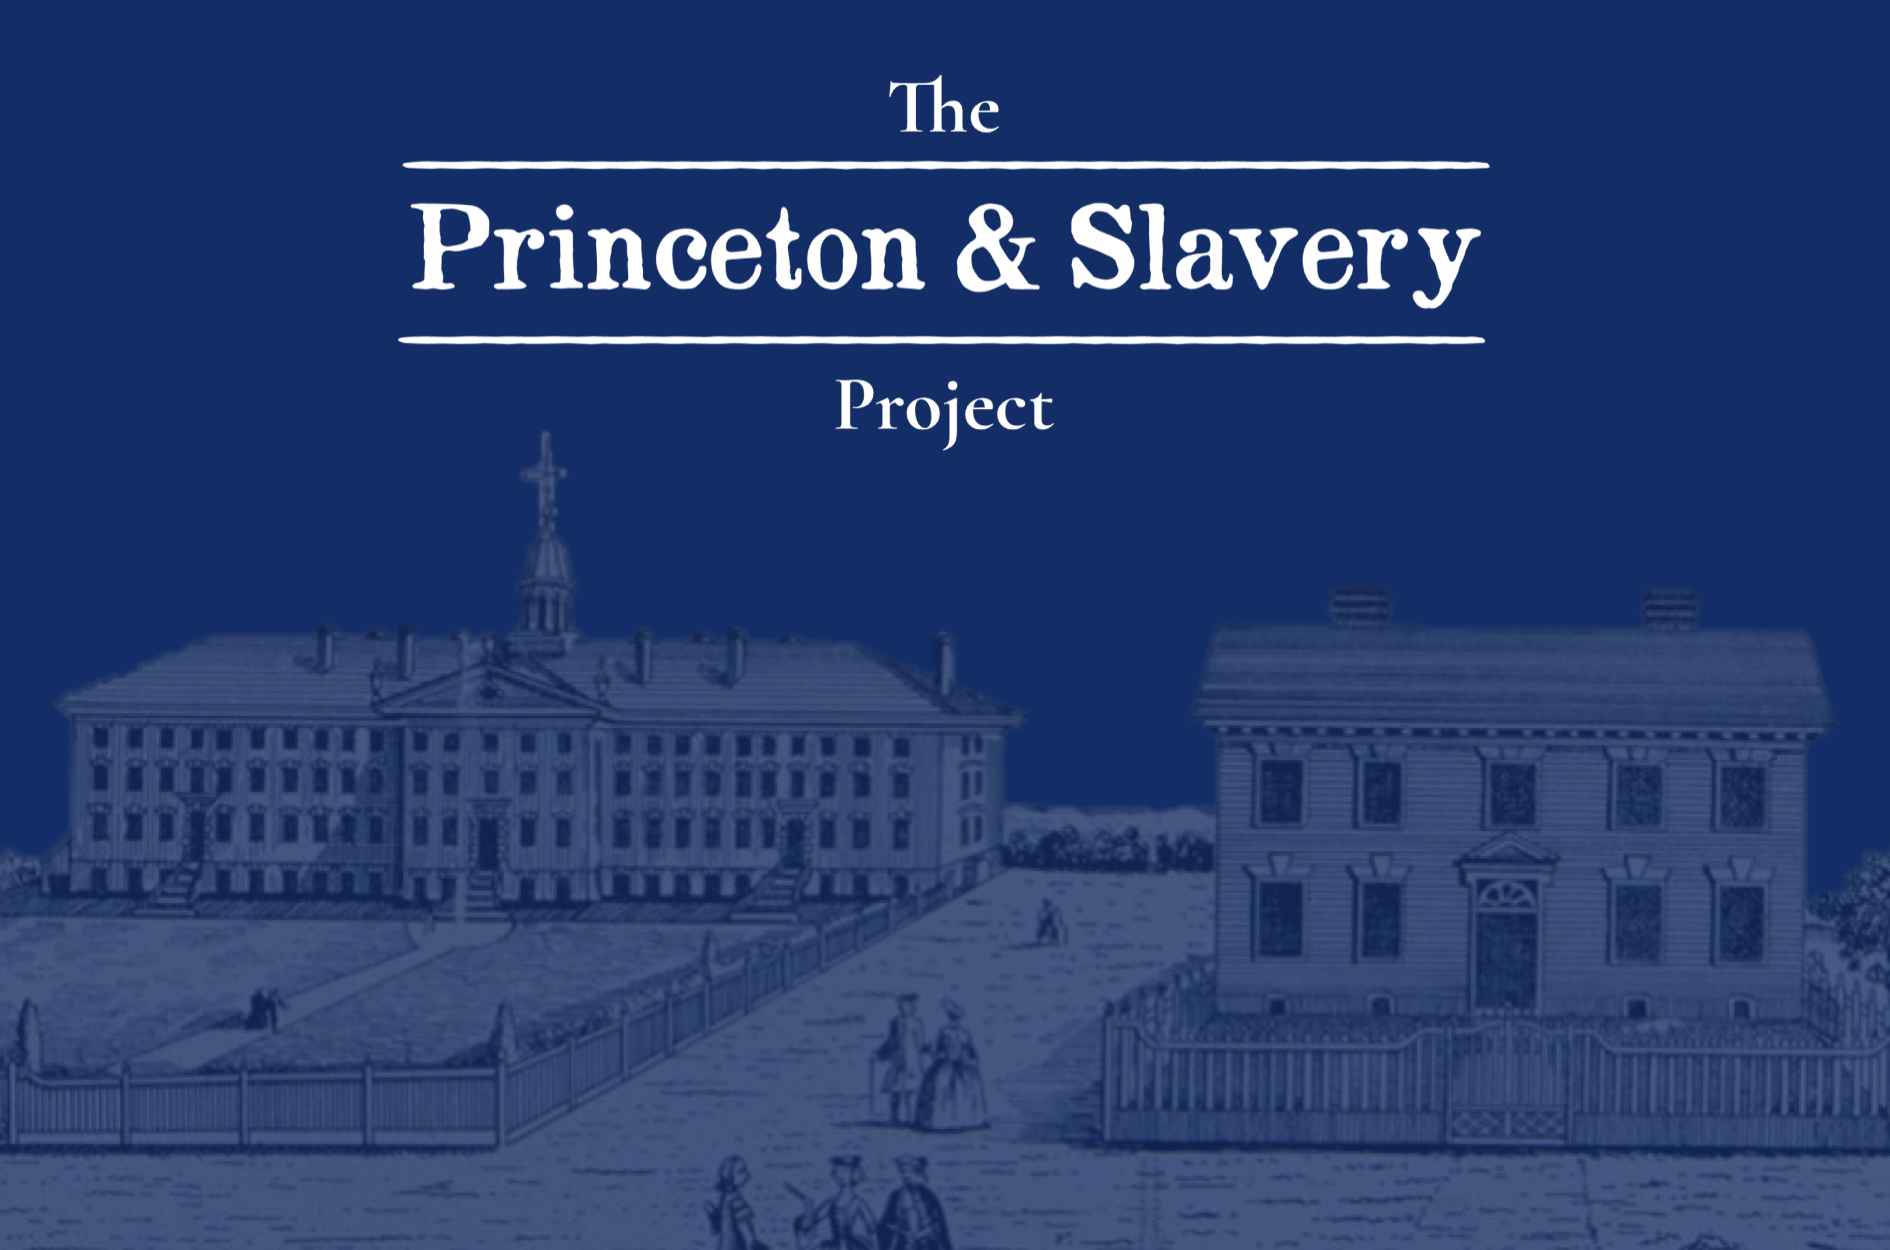 The Princeton & Slavery Project